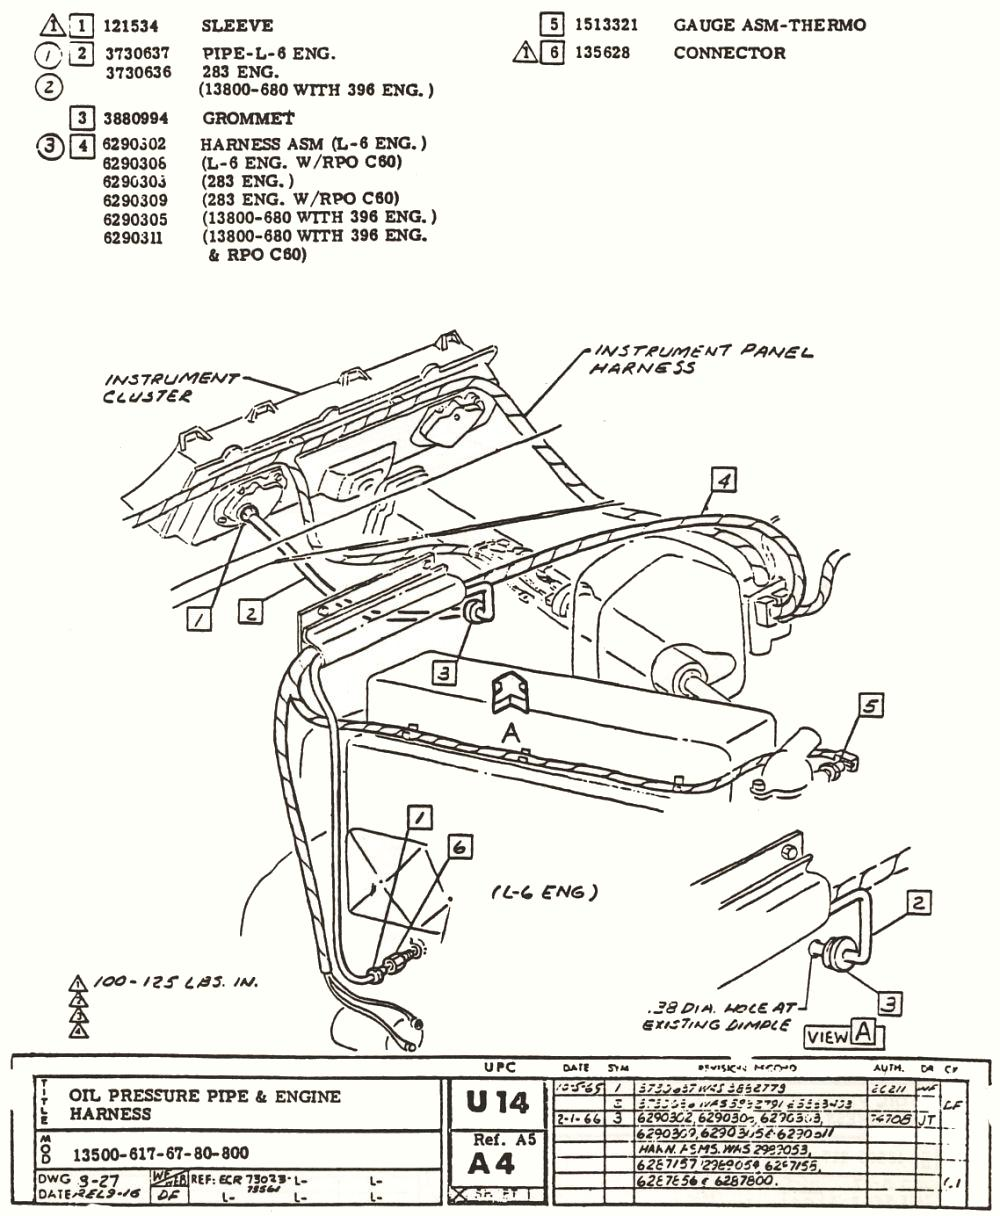 1966 CHEVELLE FACTORY ASSEMBLY INSTRUCTION MANUAL